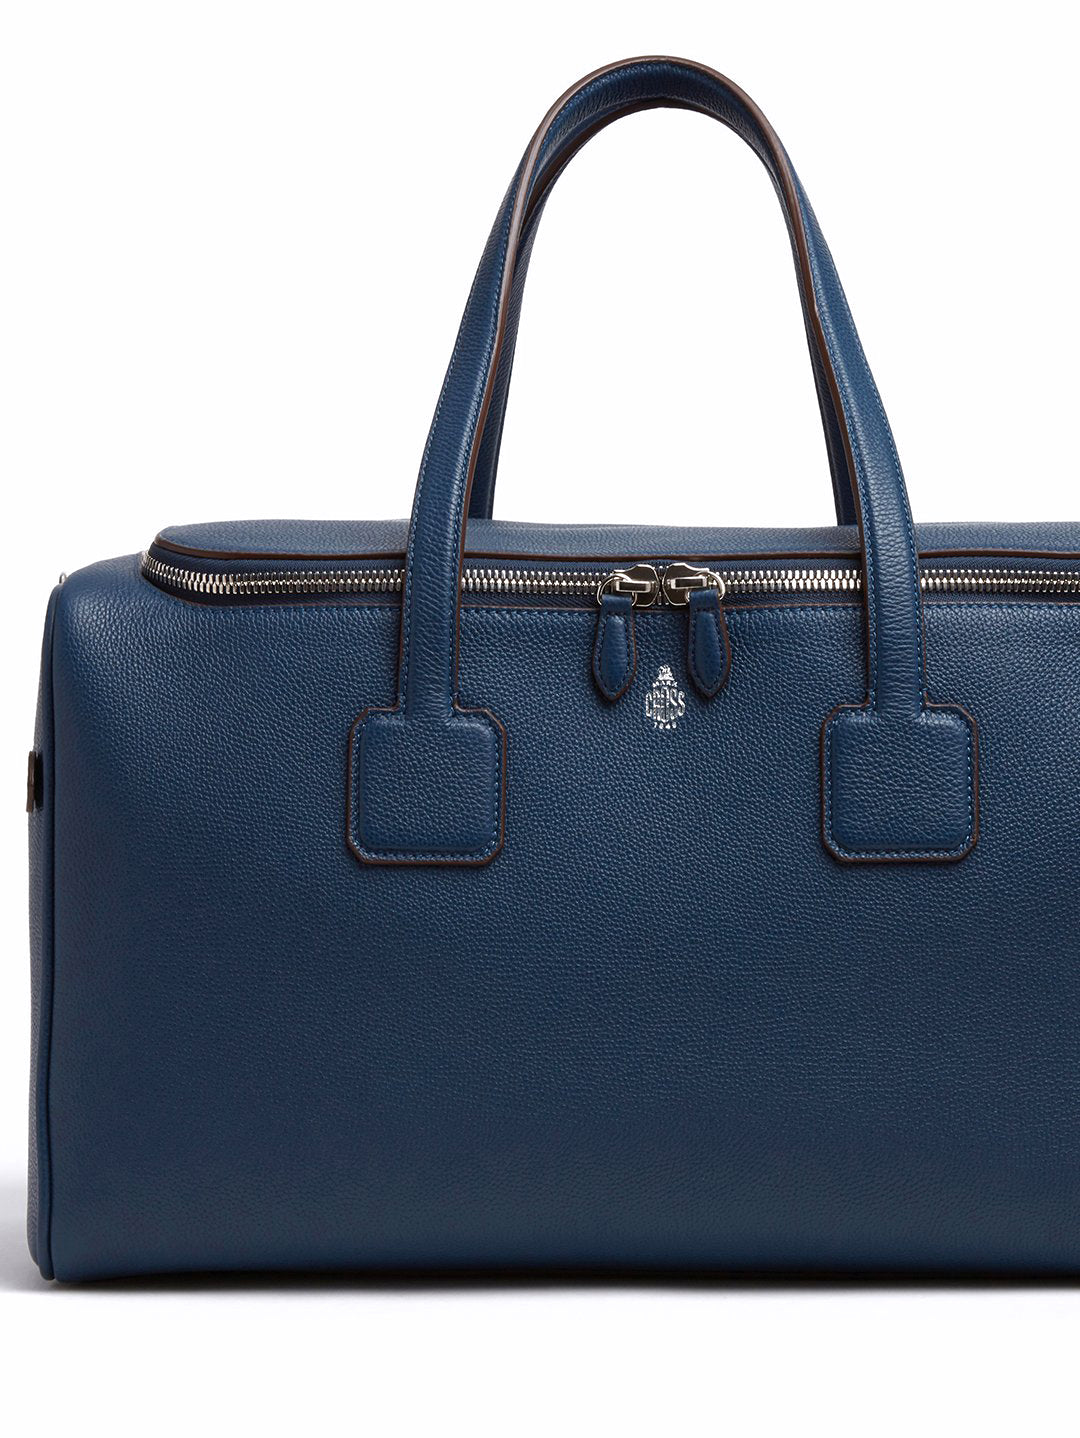 Mark Cross Henry Leather Sports Duffle Bag Tumbled Grain Navy Detail